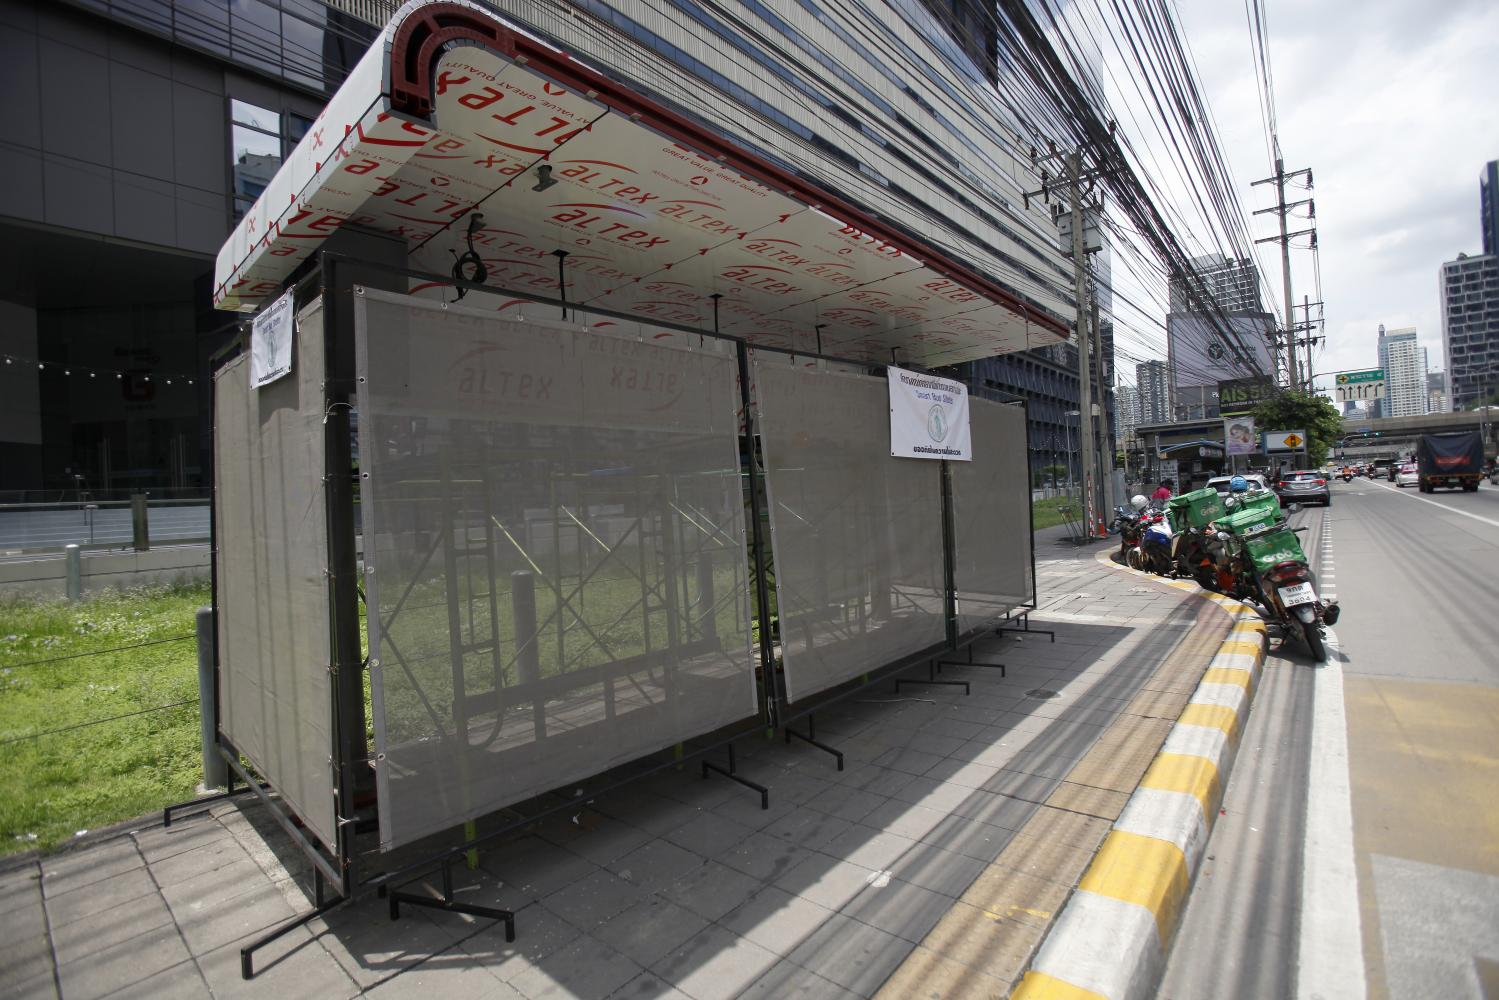 The bus stop outside the Central Rama IX department store undergoes a renovation with digital features such as a display screen showing bus arrival times, a Wi-Fi connection and surveillance cameras to be featured. It is one of the 350 bus stops in Bangkok to go digital. (Photo by Nutthawat Wicheanbut)